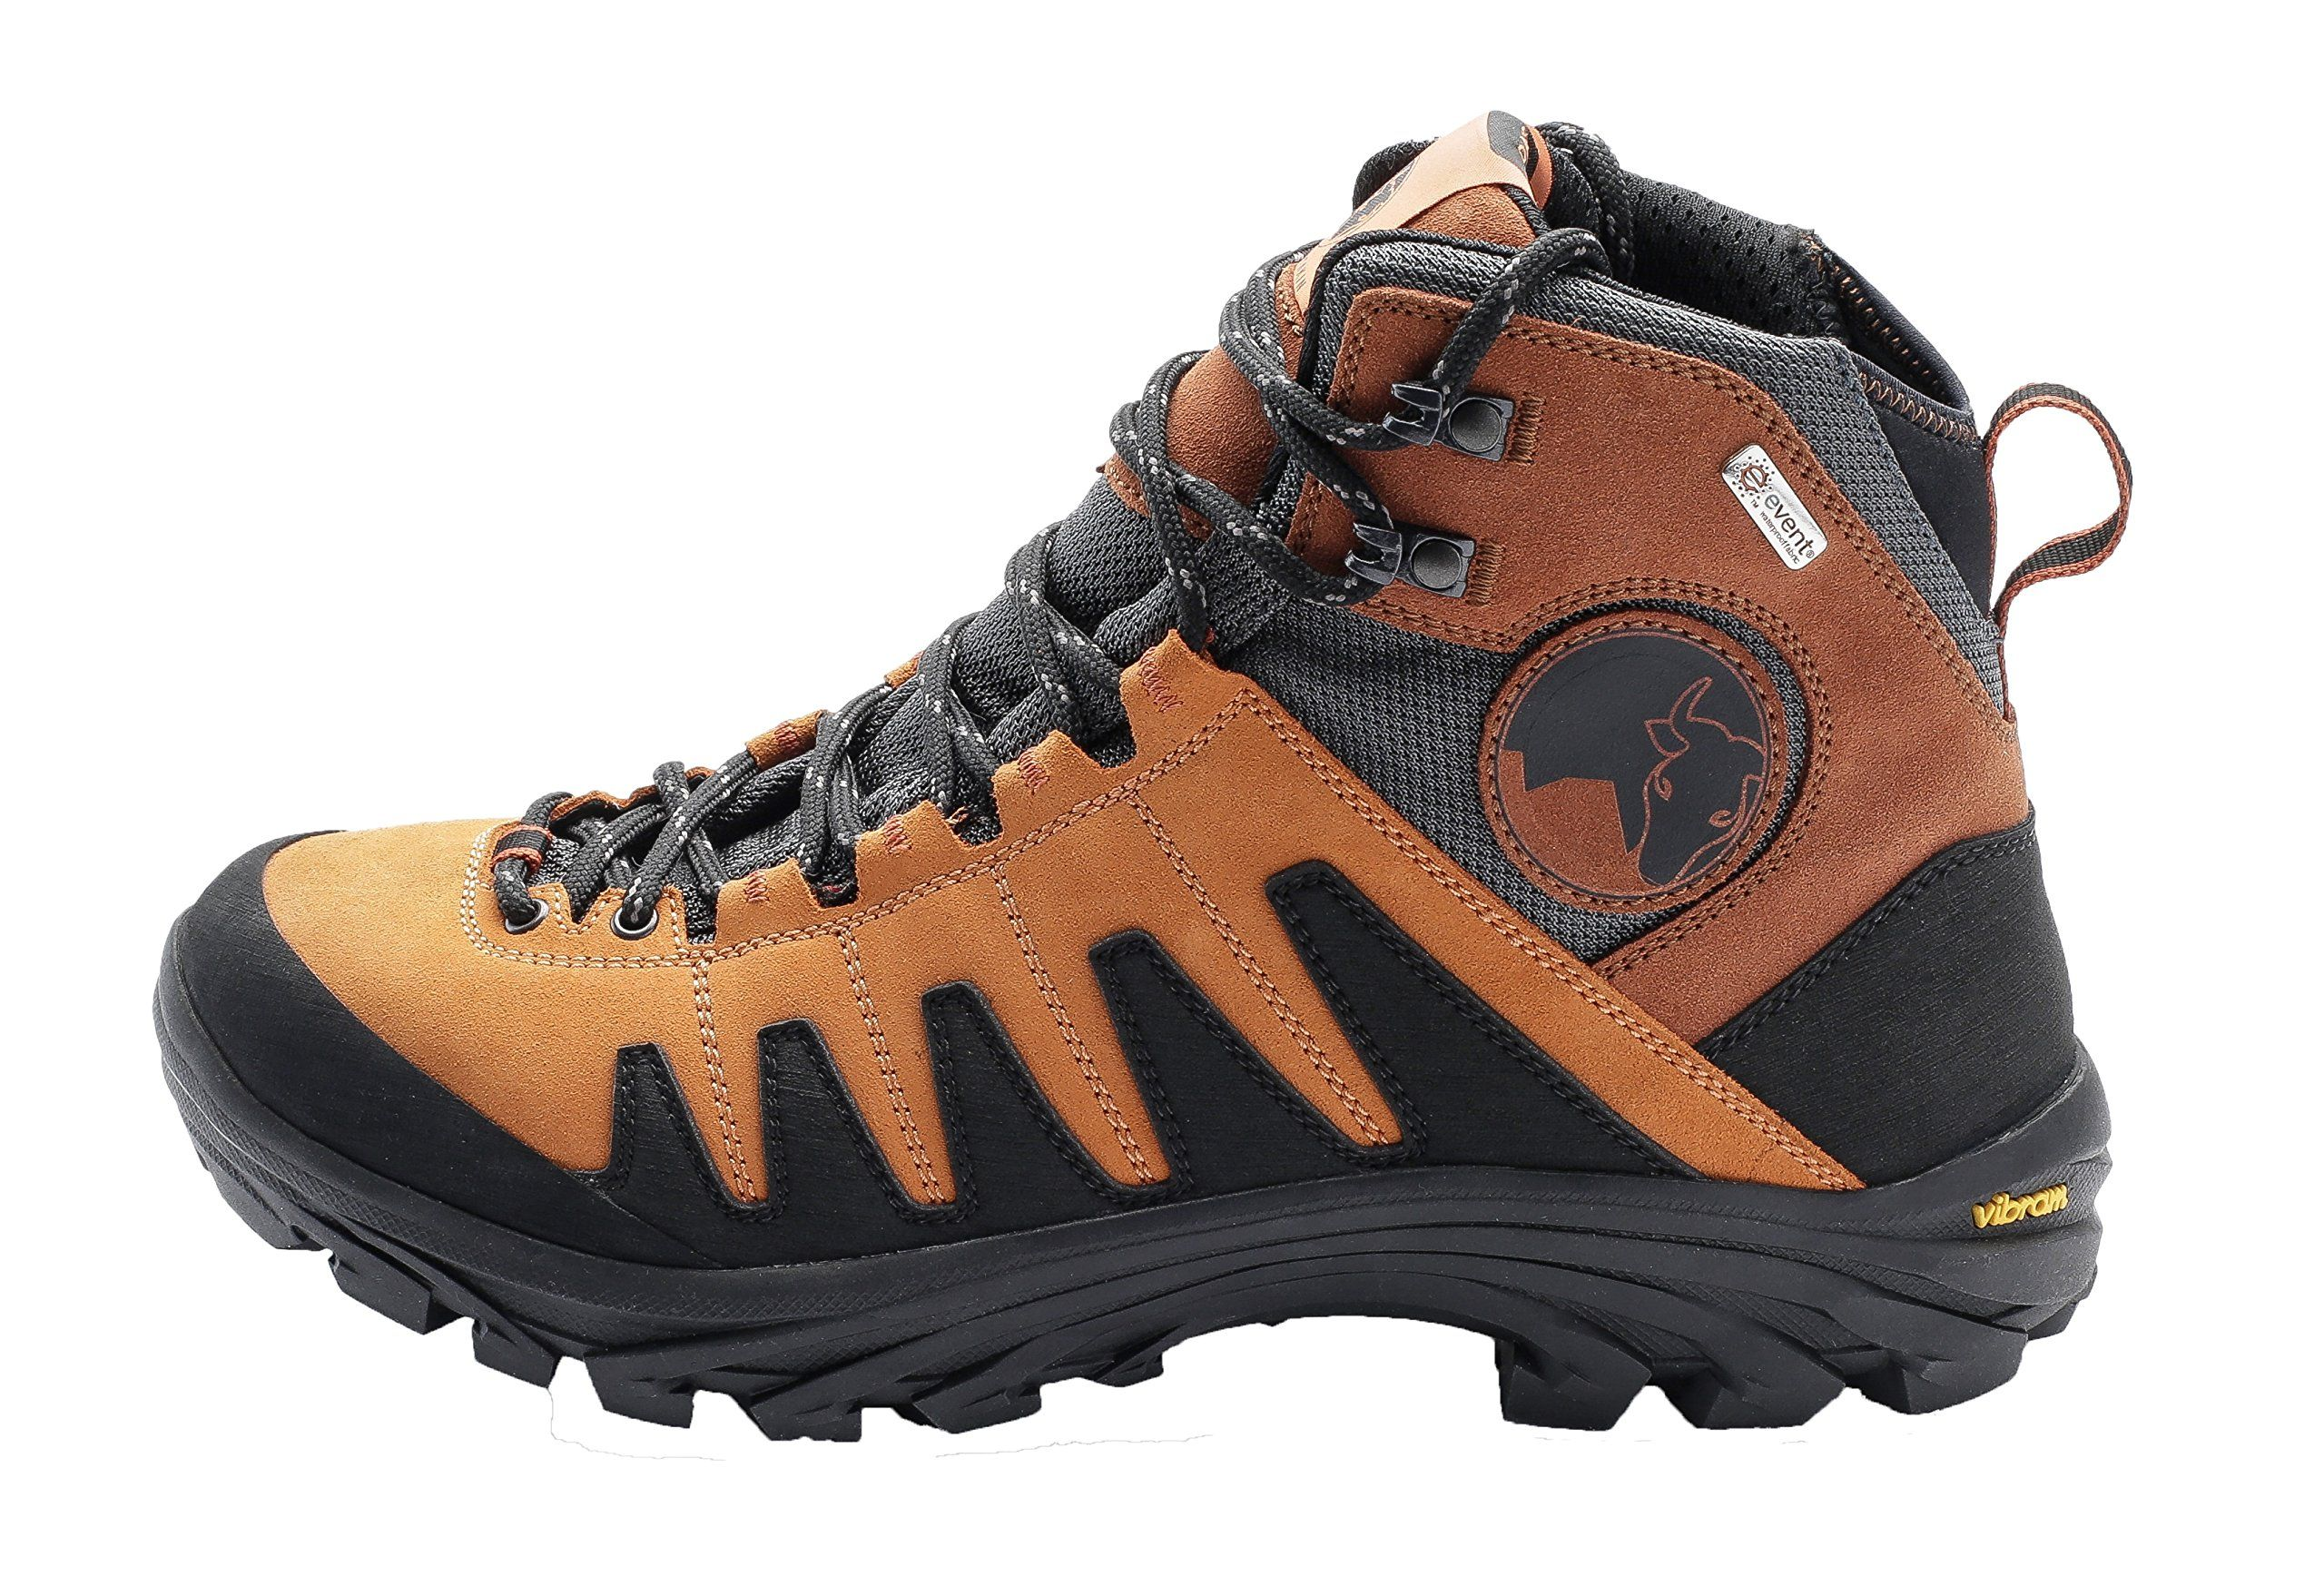 6899f717066 Mishmi Takin Kameng Mid Event Waterproof Hiking Boot EU 44/US Men 11 ...